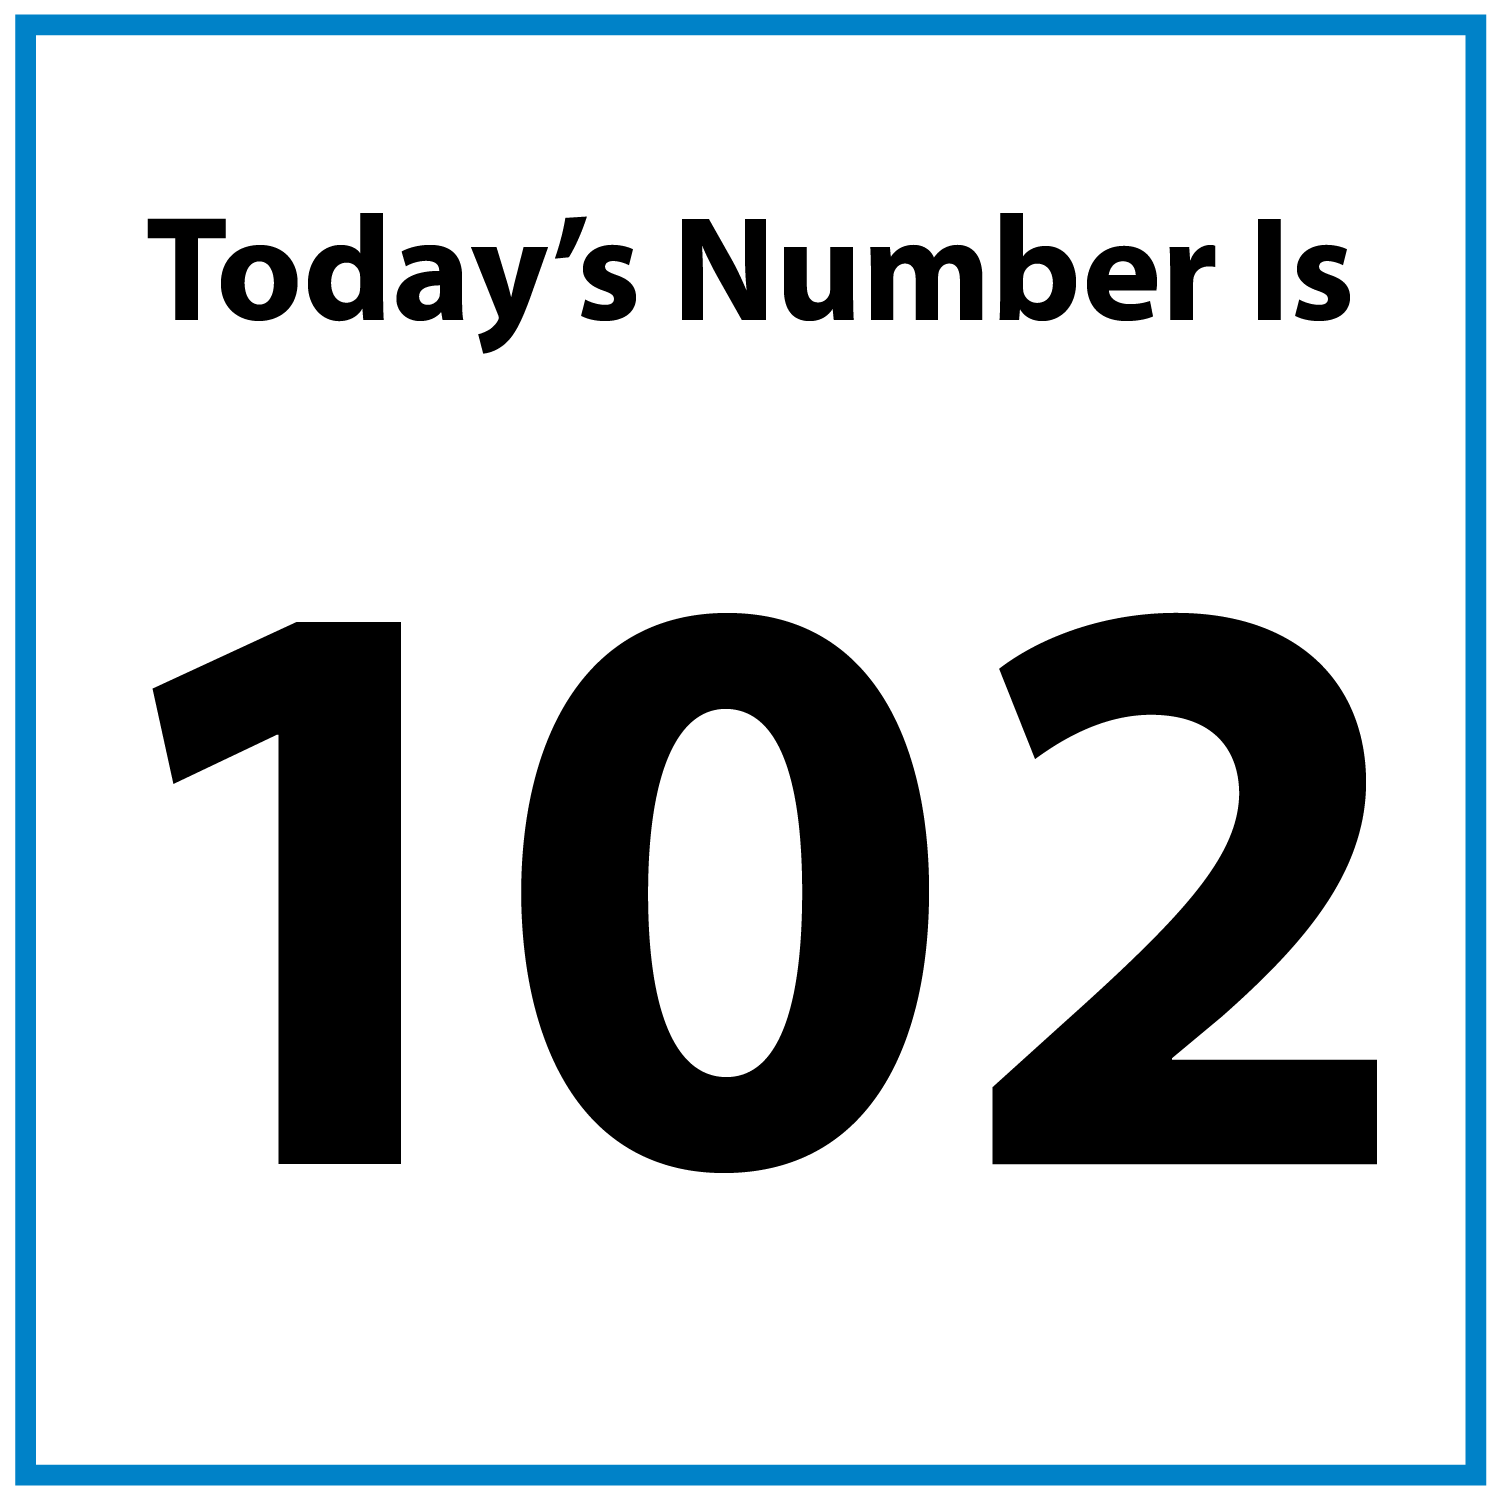 Today's number is 102.